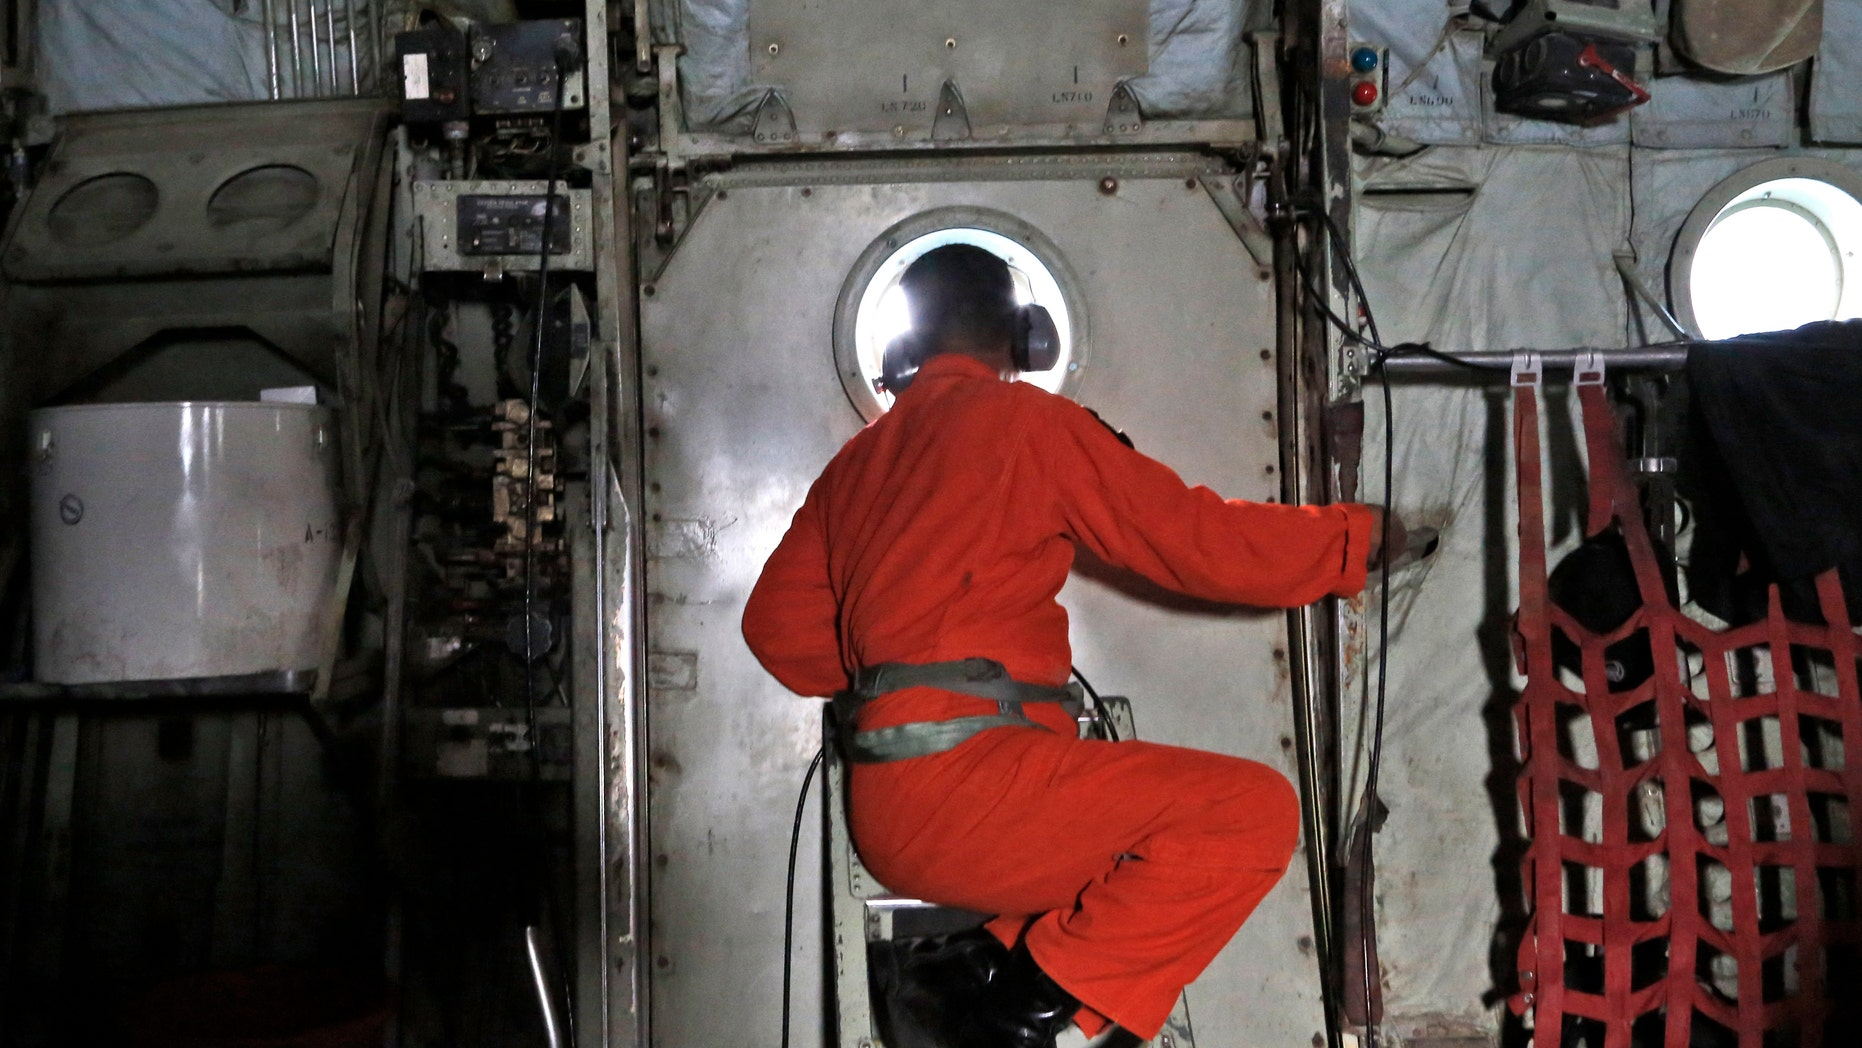 Dec. 29, 2014: A crew of an Indonesian Air Force C-130 airplane of the 31st Air Squadron, looks out of the window during a search operation for the missing AirAsia flight 8501 jetliner over the waters of Karimata Strait in Indonesia.